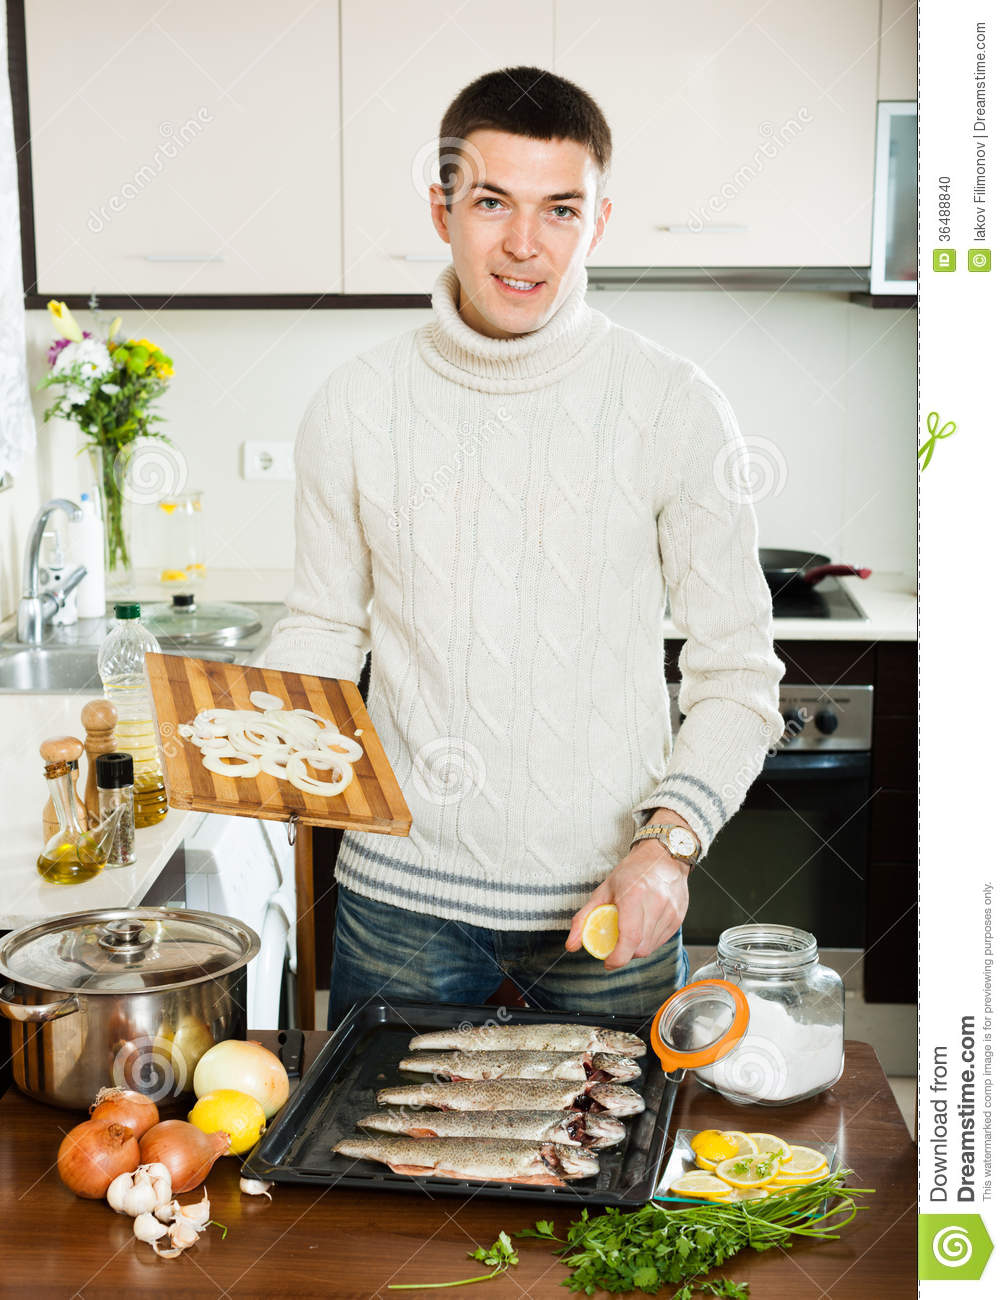 Man Cooking Fish In Baking Sheet At Home Stock Photo ...